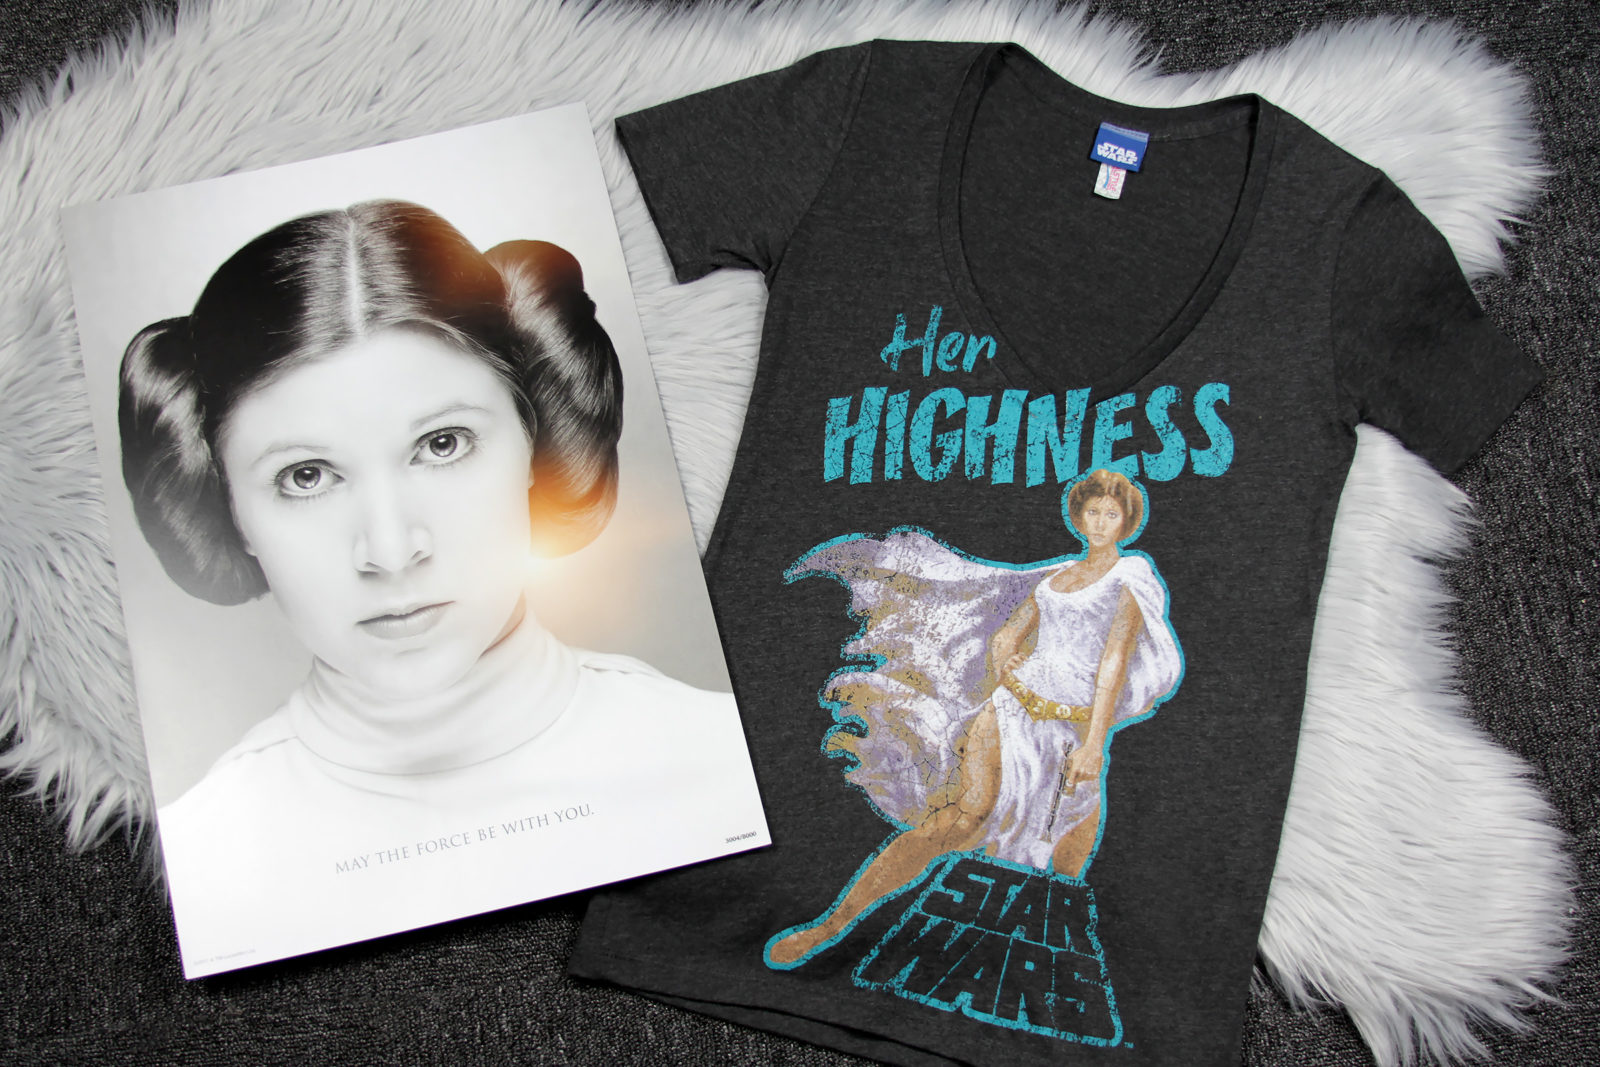 Celebrating Princess Leia – Remembering Carrie